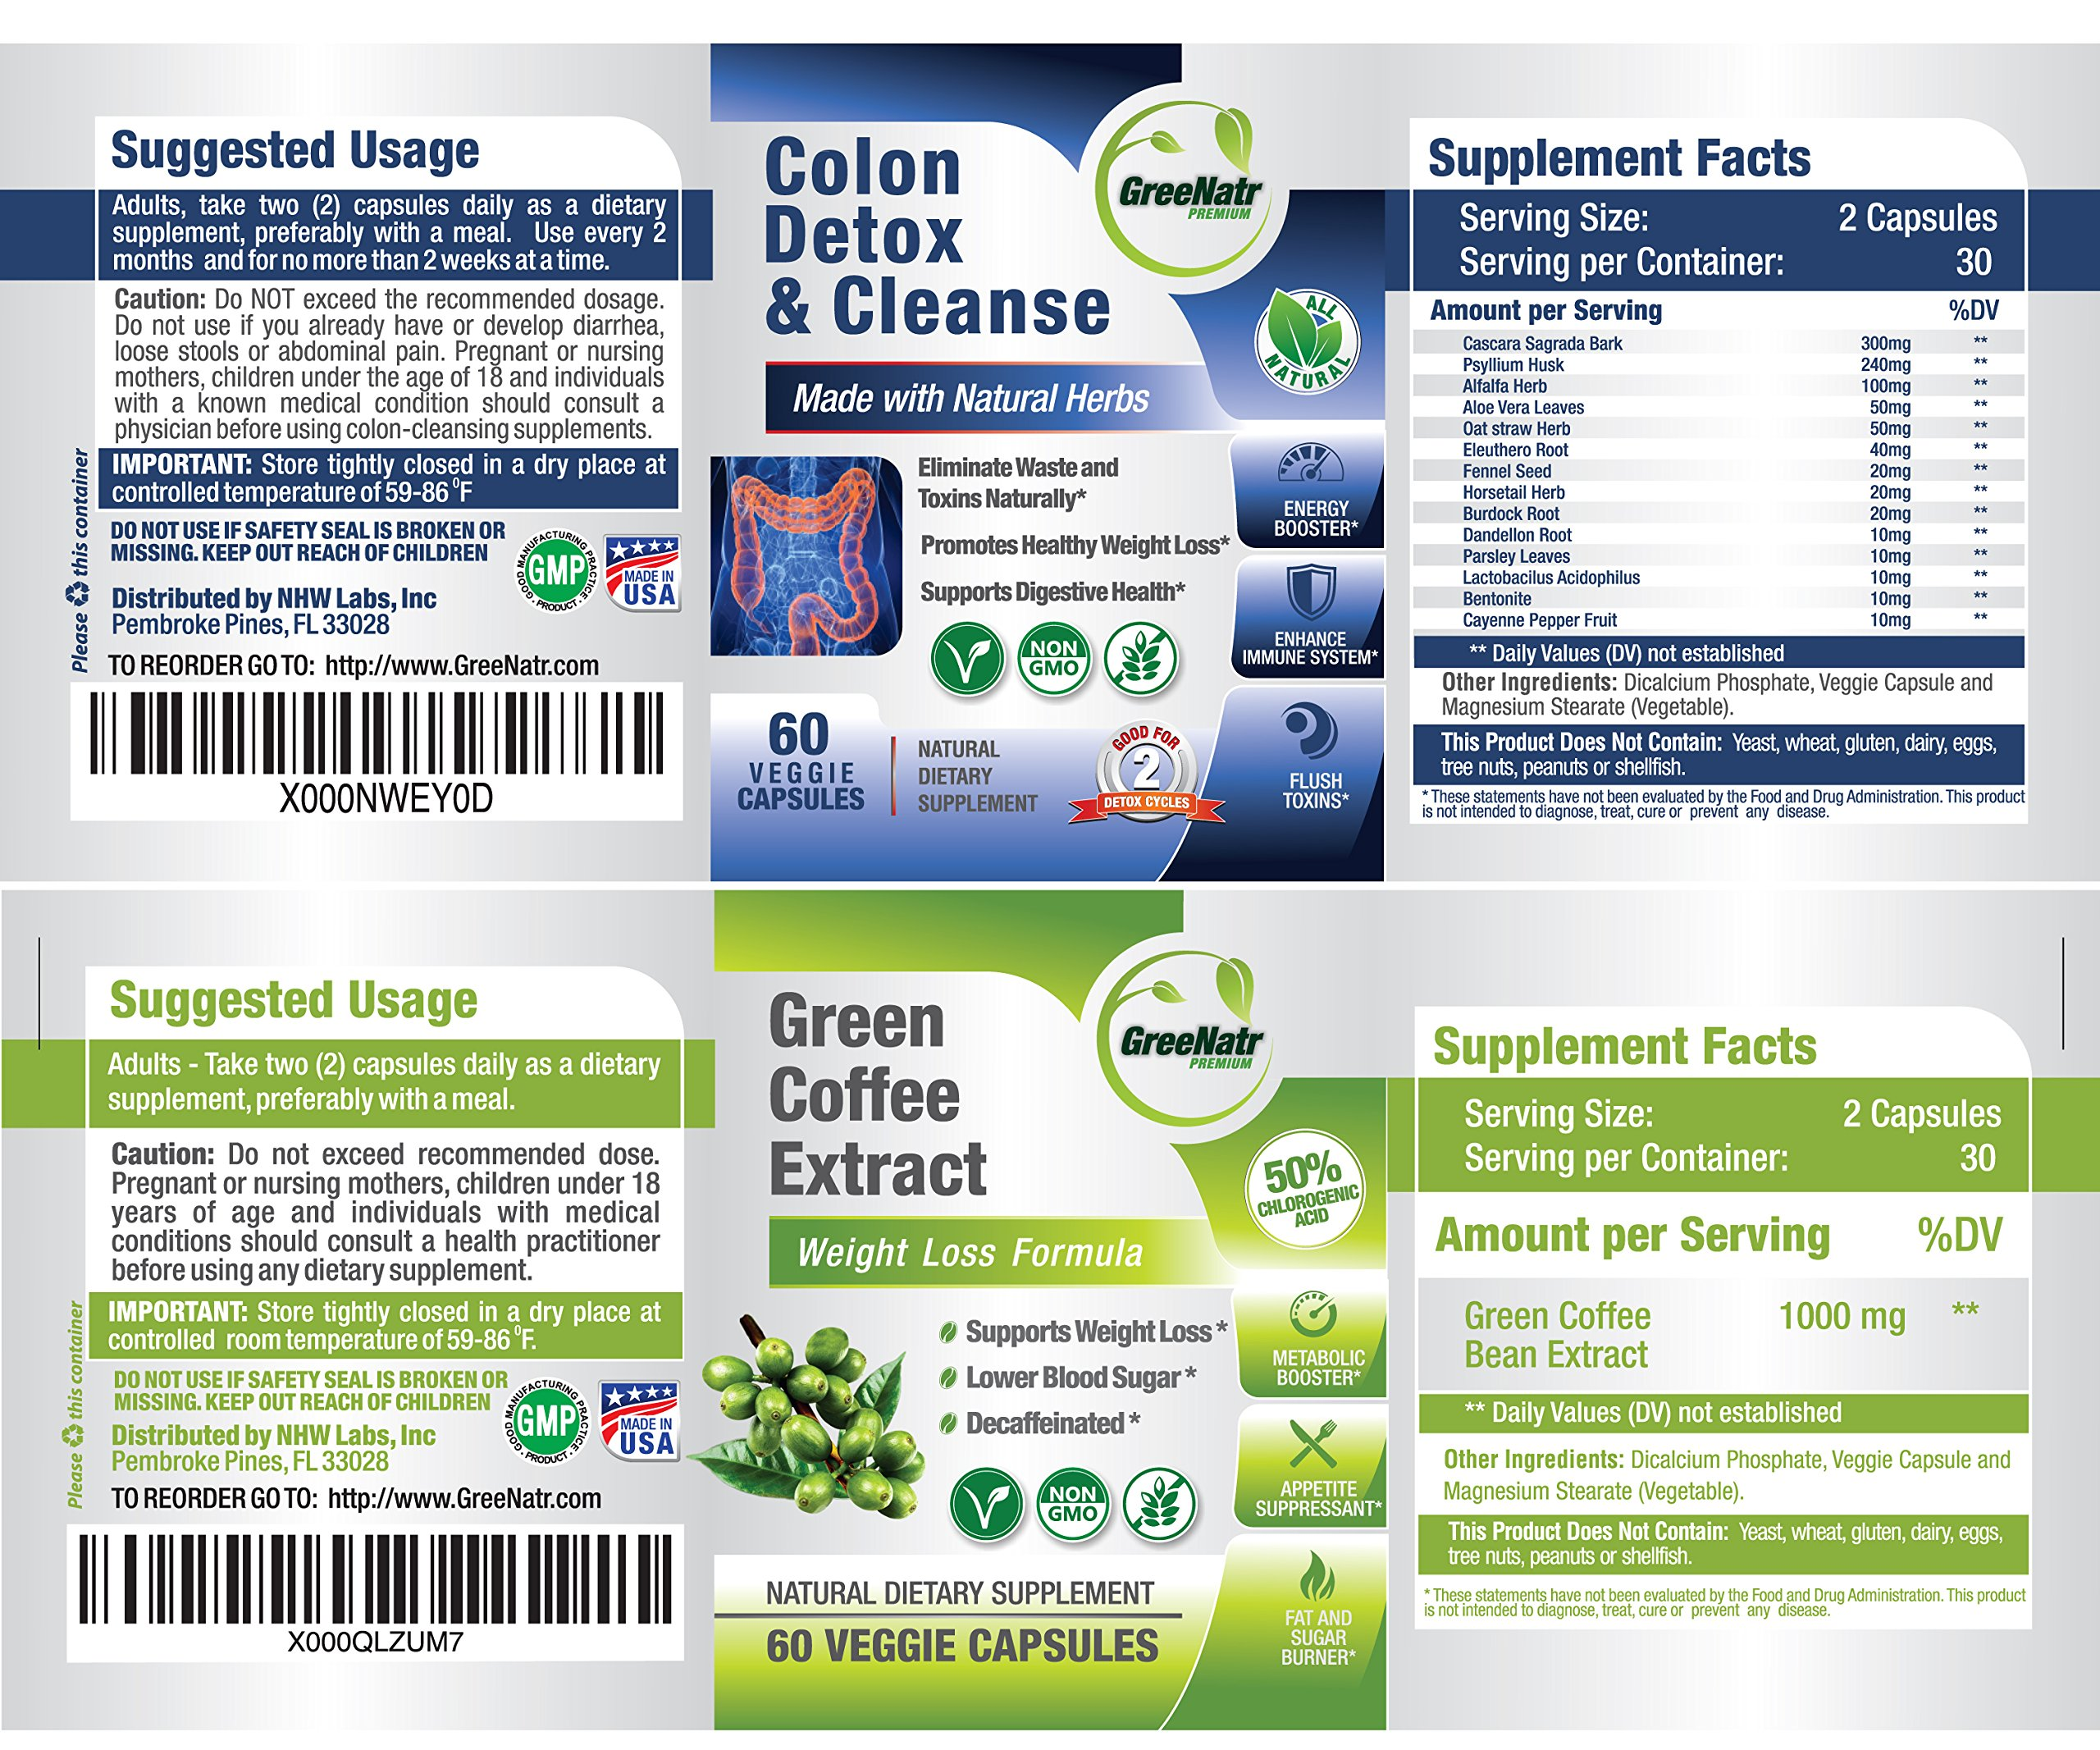 Pure Green Coffee Bean Extract + Colon Cleanse Detox Diet - Weight Loss and Detox Bundle - 480 Veggie Capsules - Gluten Free - Non GMO (6 Months Supply) by GreeNatr (Image #3)